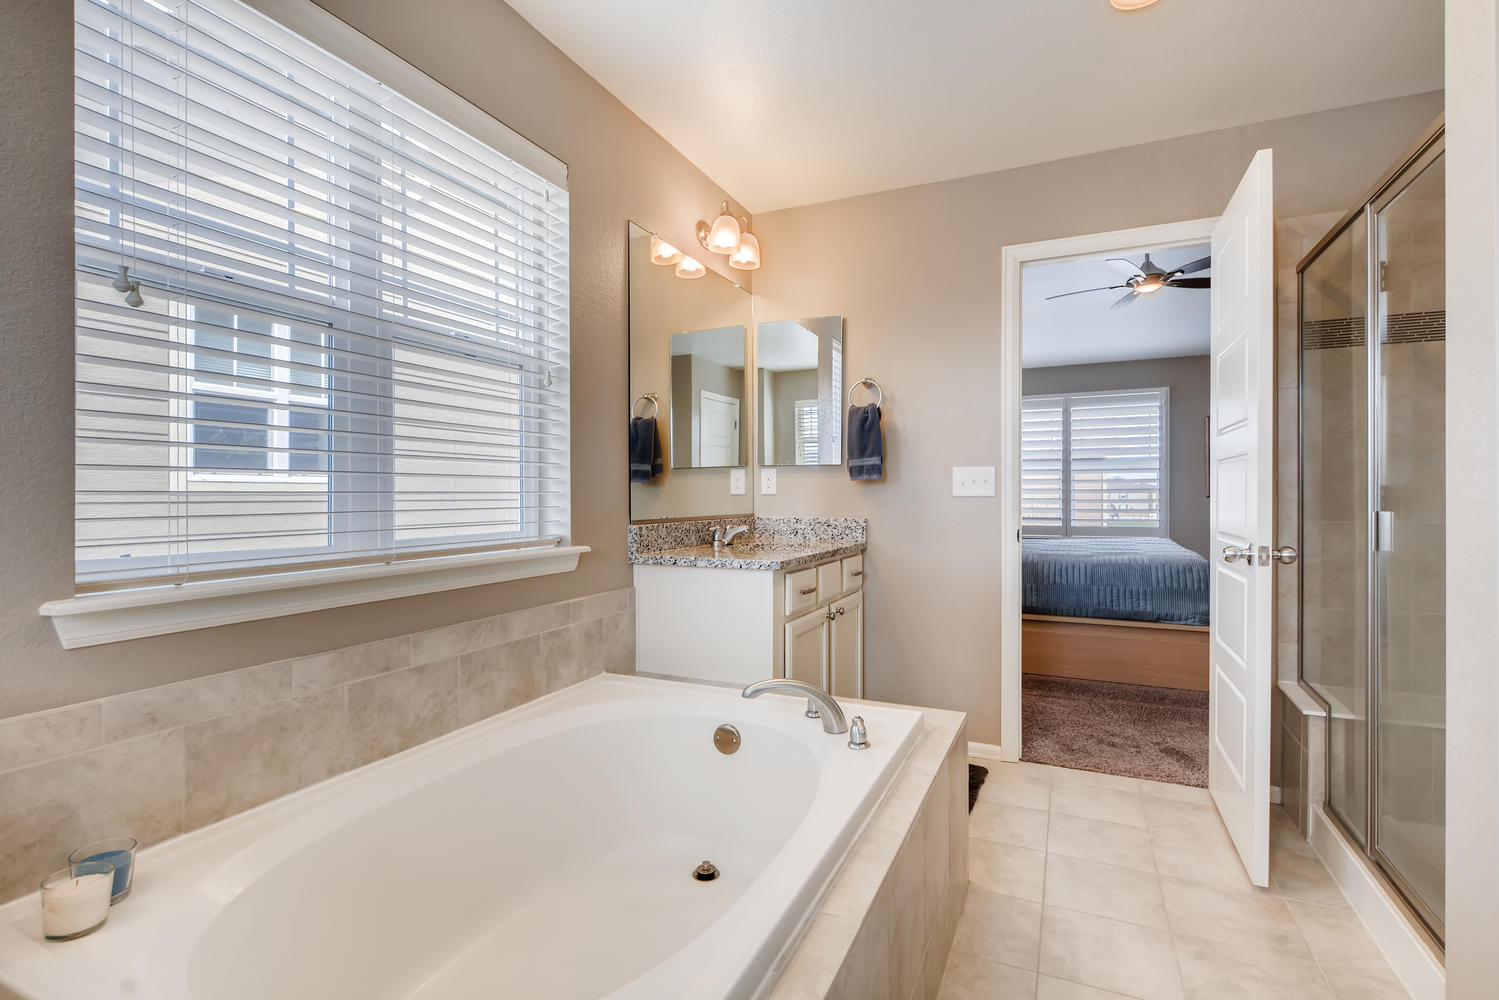 REAL ESTATE LISTING: 2182 Steppe Dr Longmont Master Bath